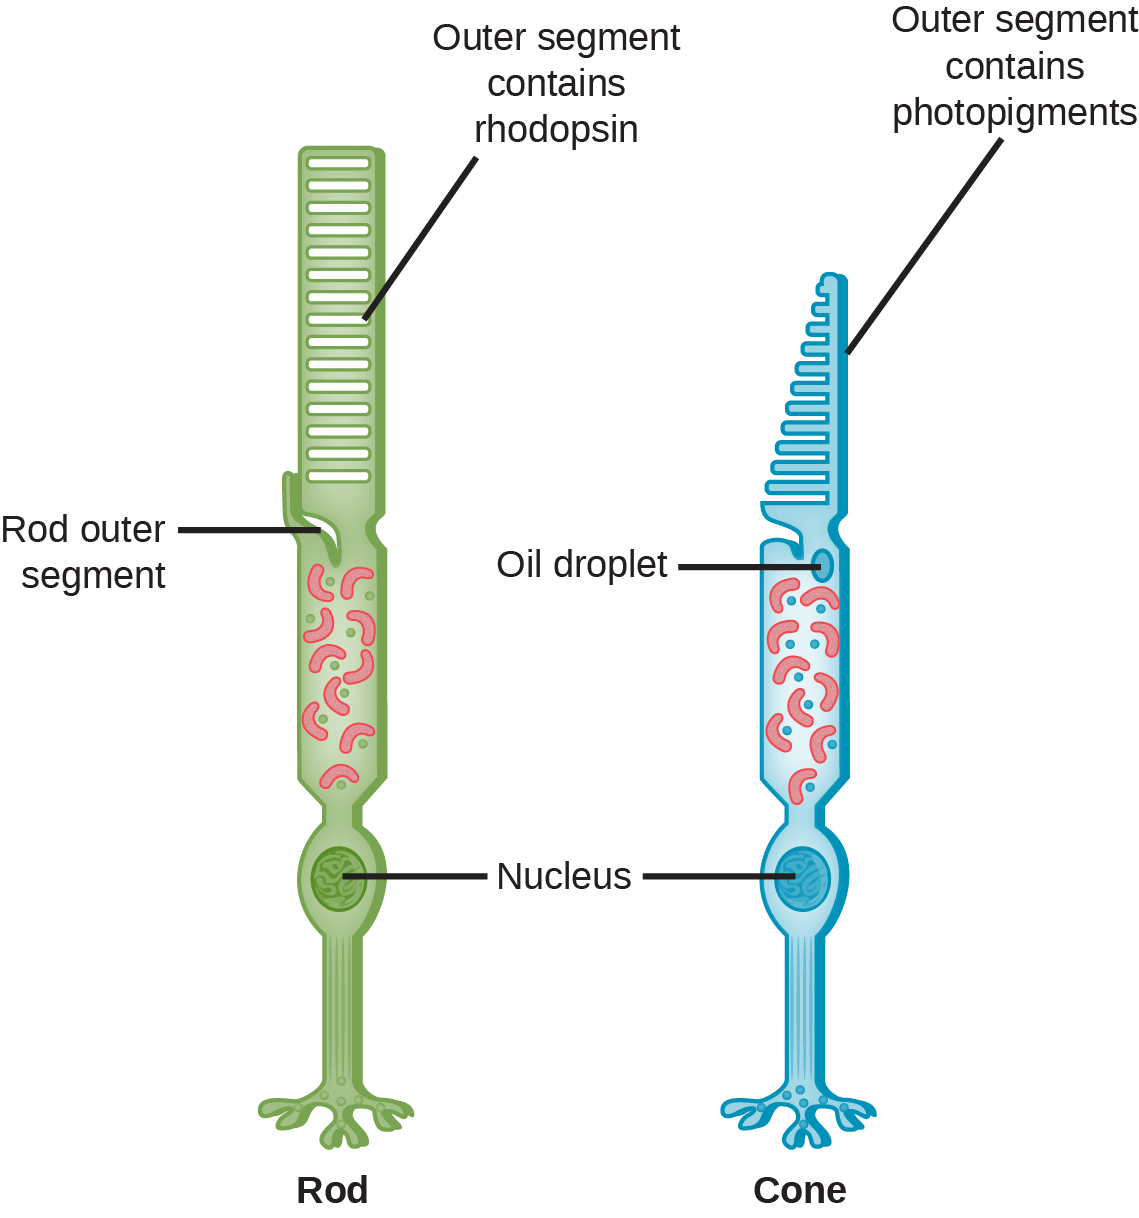 This illustration shows that rods and cones are both long, column-like cells with the nucleus located in the bottom portion. The rod is longer than the cone. The outer segment of the rod contains rhodopsin. The outer segment of the cone contains other photo-pigments. An oil droplet is located beneath the outer segment.